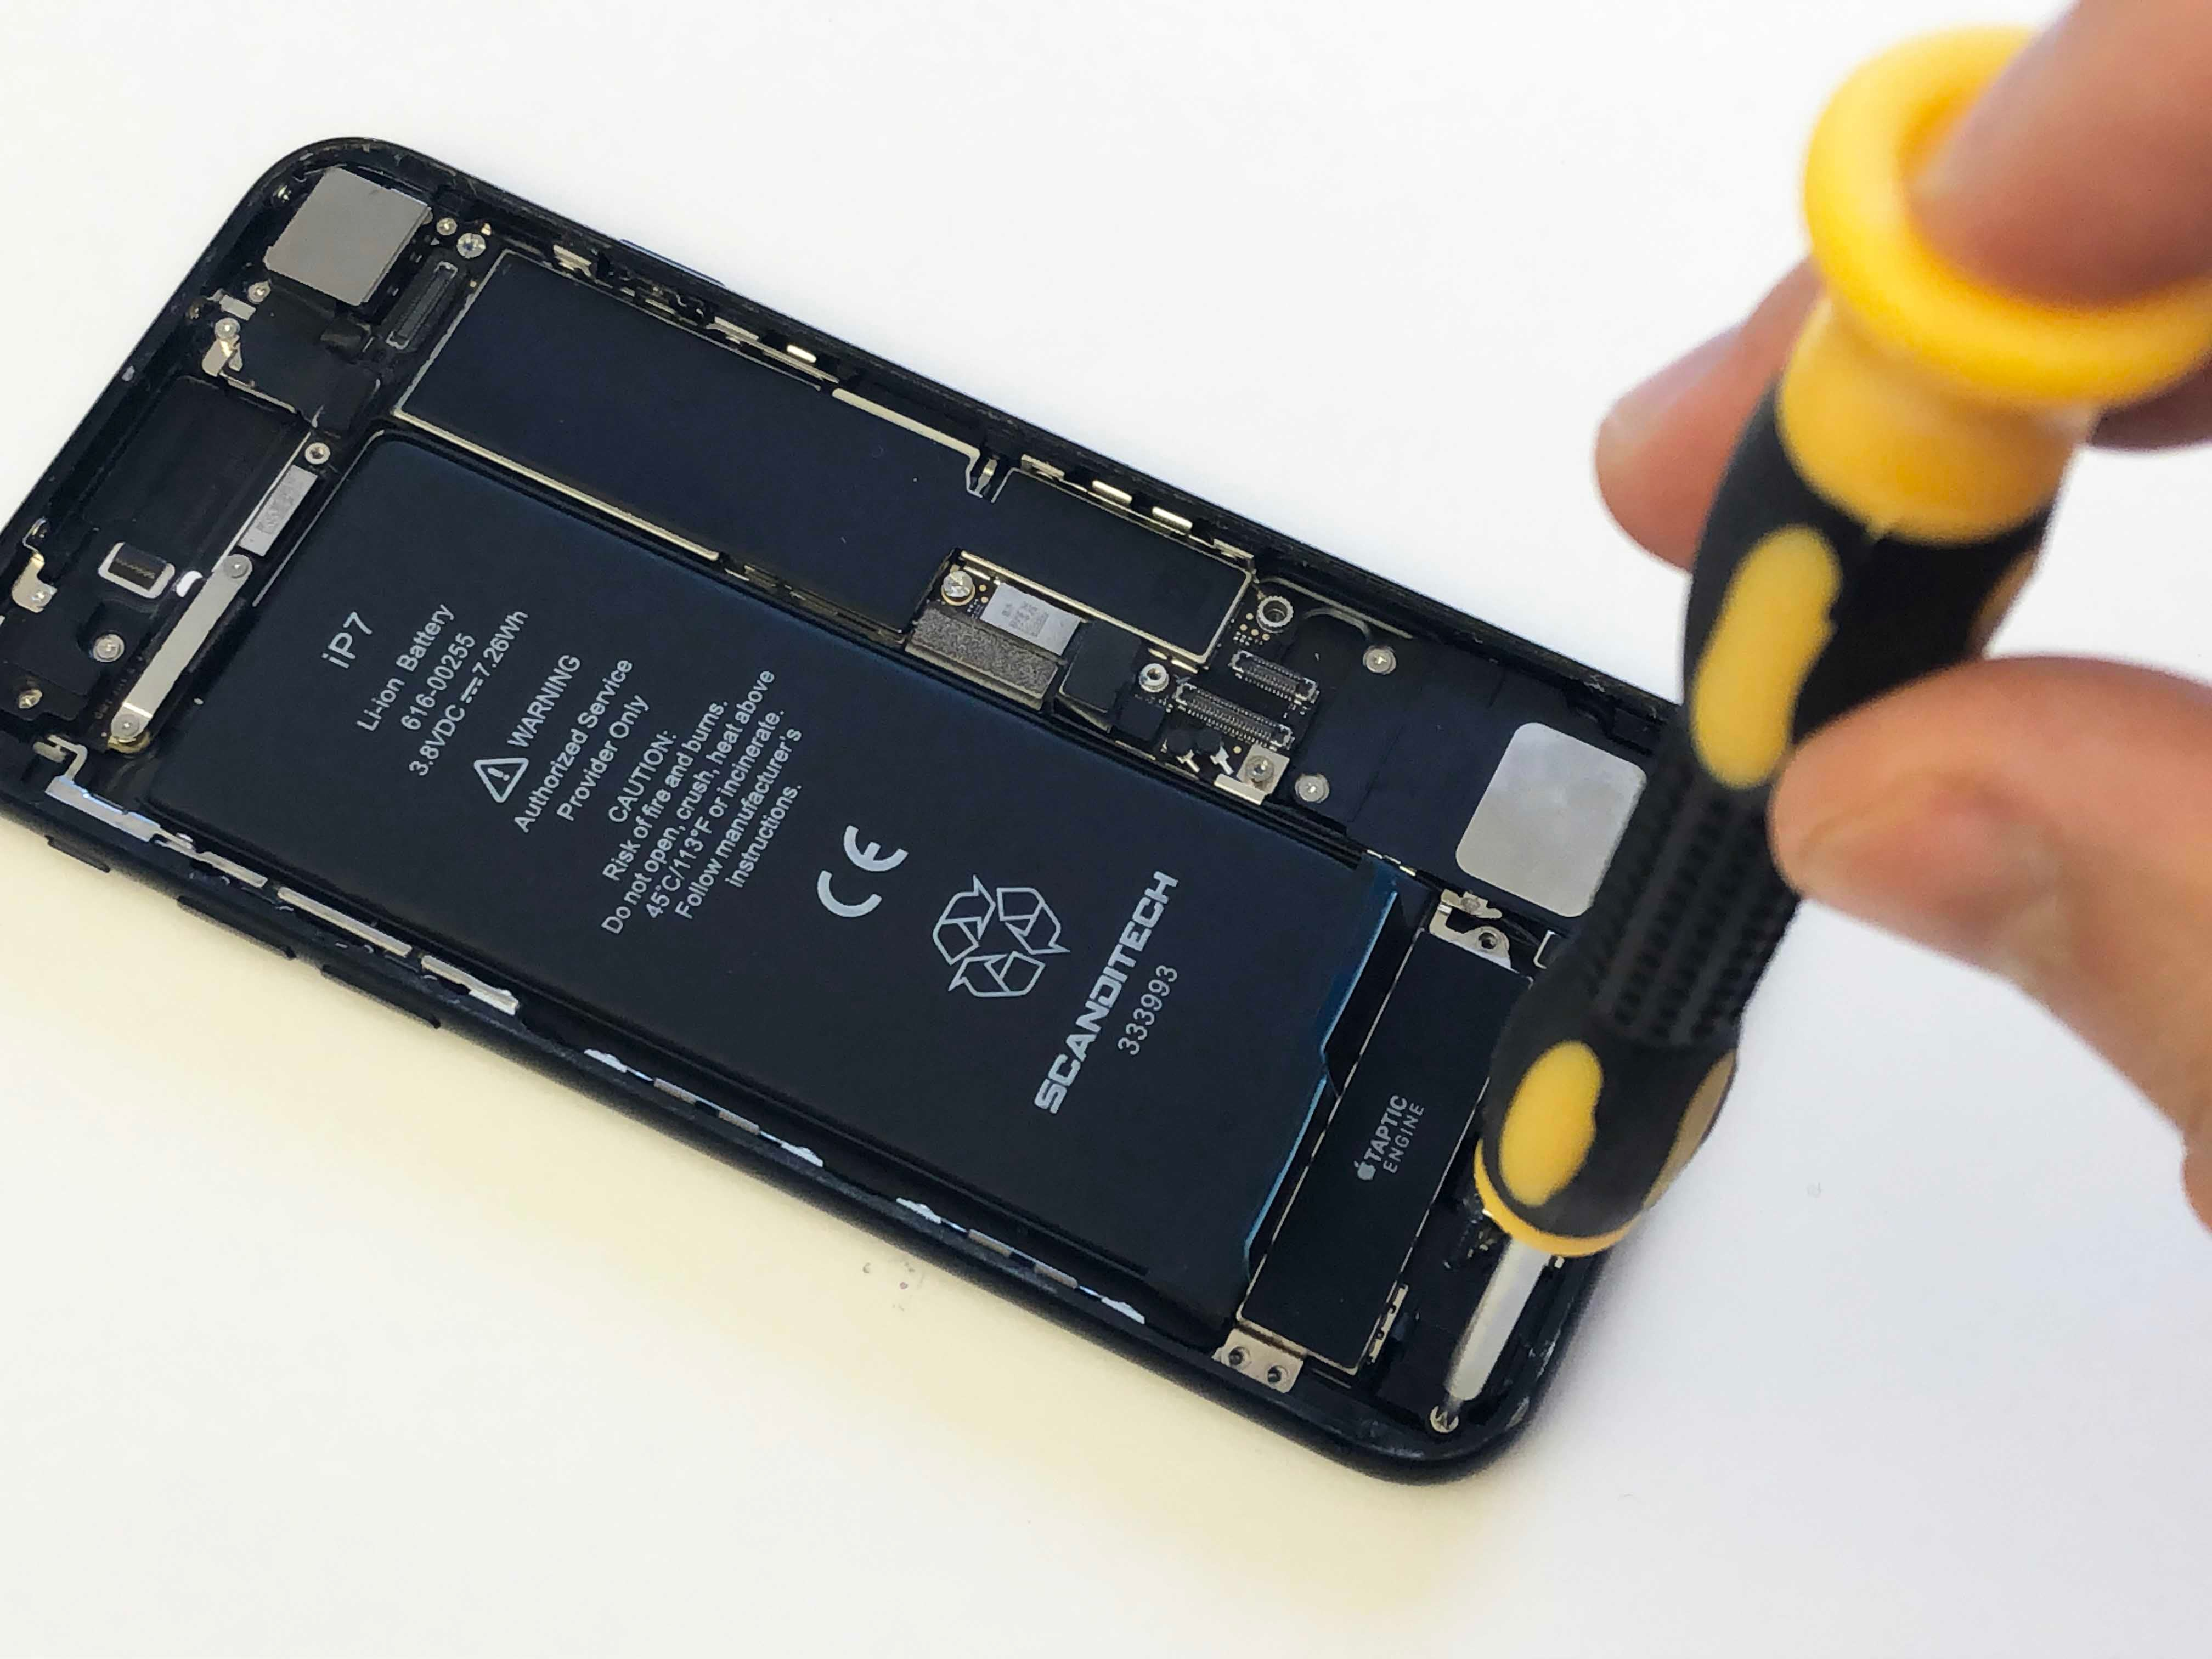 iPhone 7/7 Plus Battery Replacement - Reinstalling the taptic engine - 5